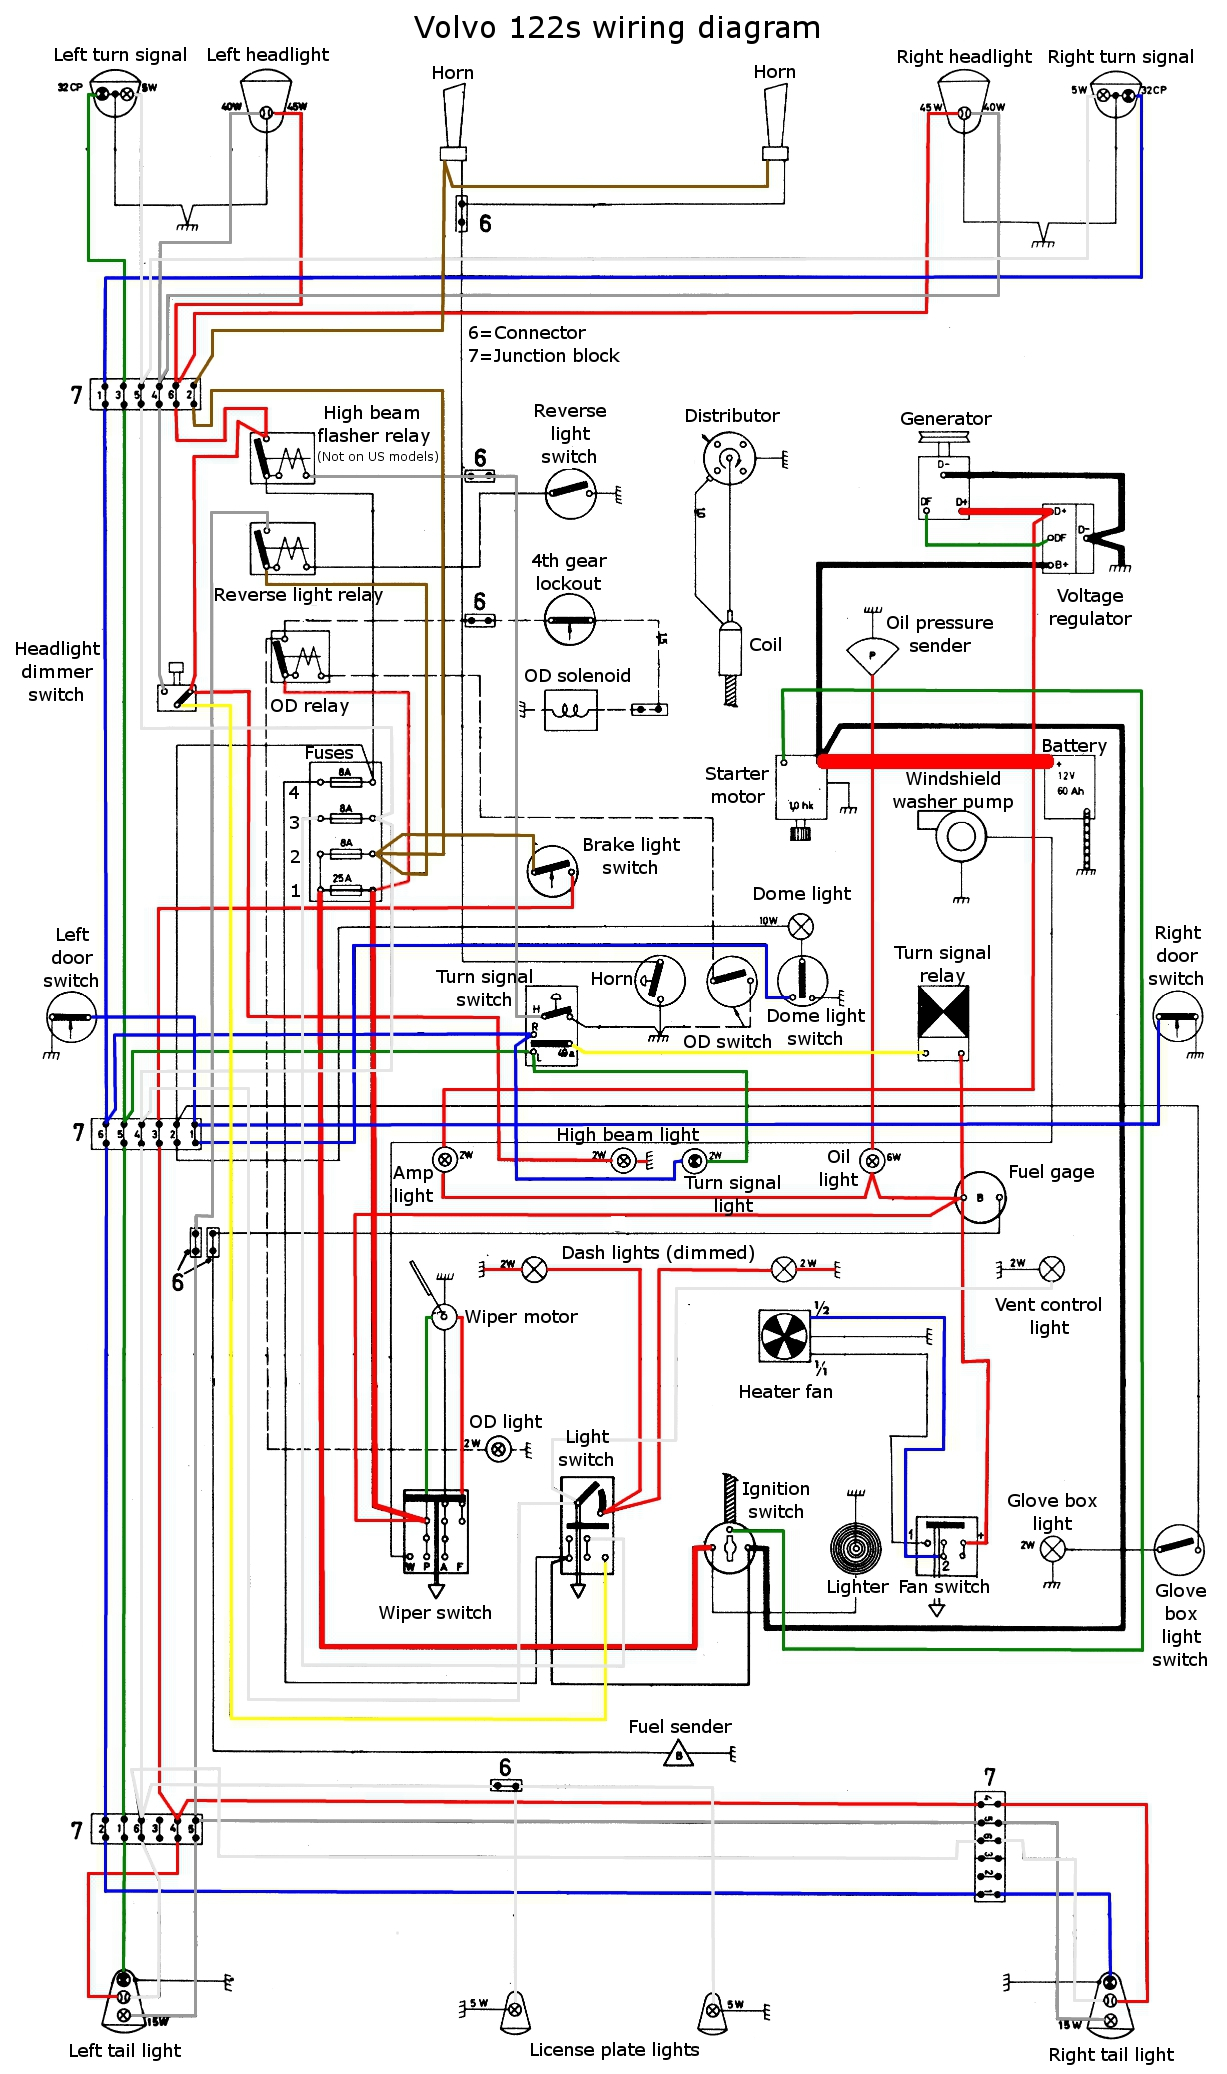 volvo truck wiring diagrams diagram for 2 gang 1 way light switch c 10 1970 headlight get free image about